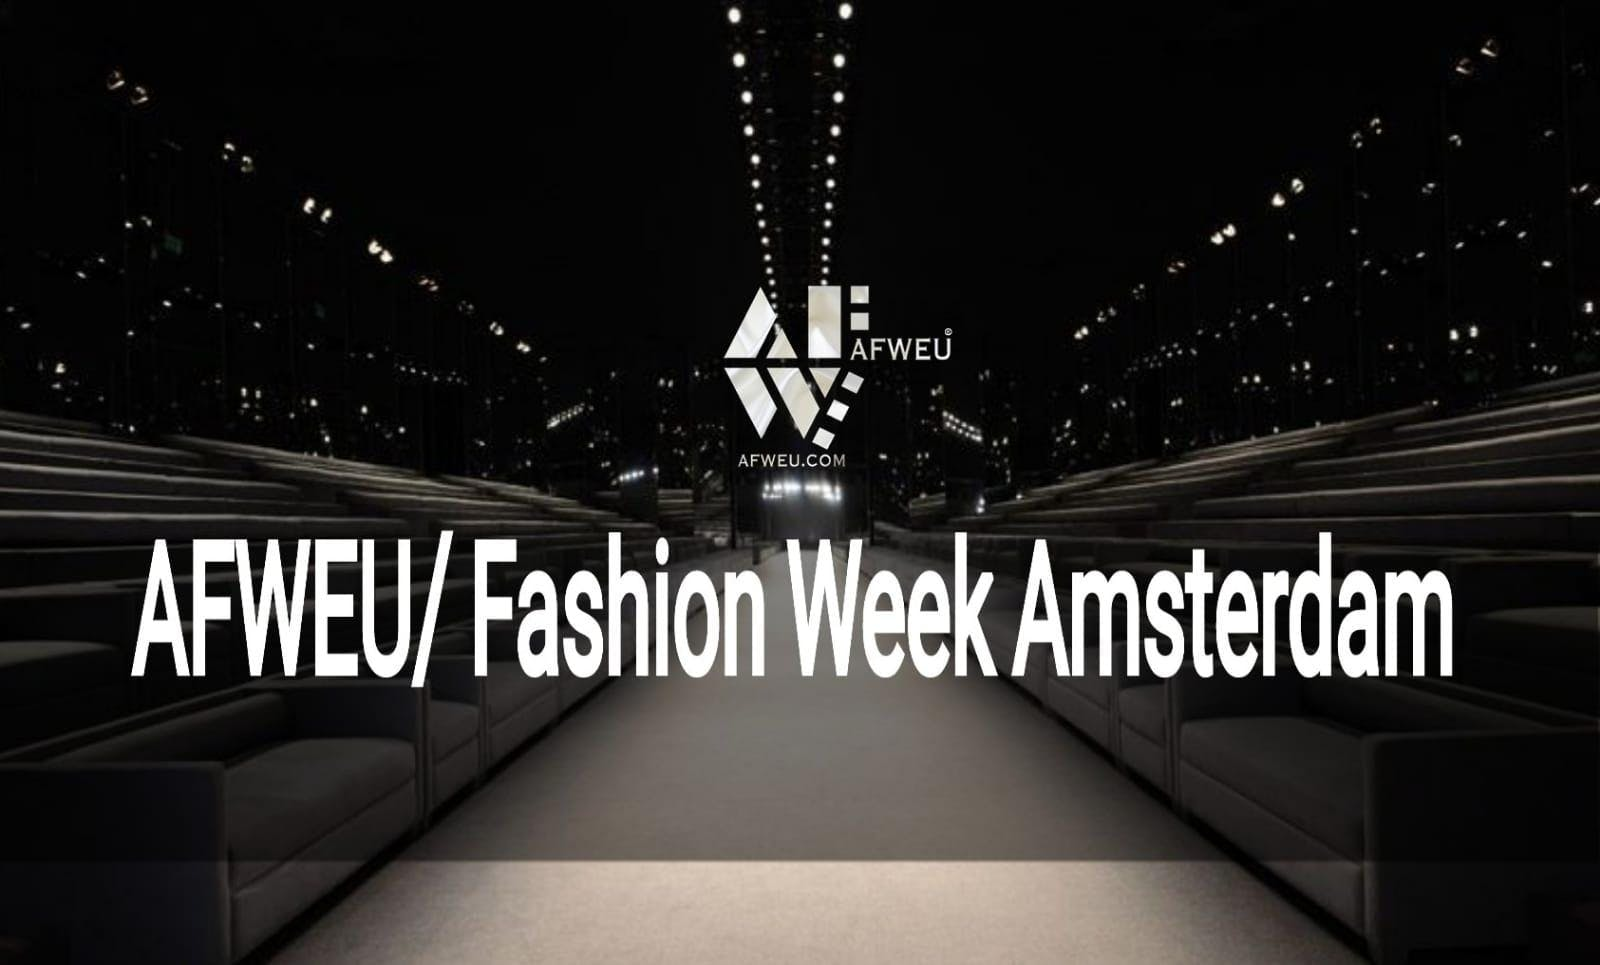 AFWEU/FASHION WEEK AMSTERDAM